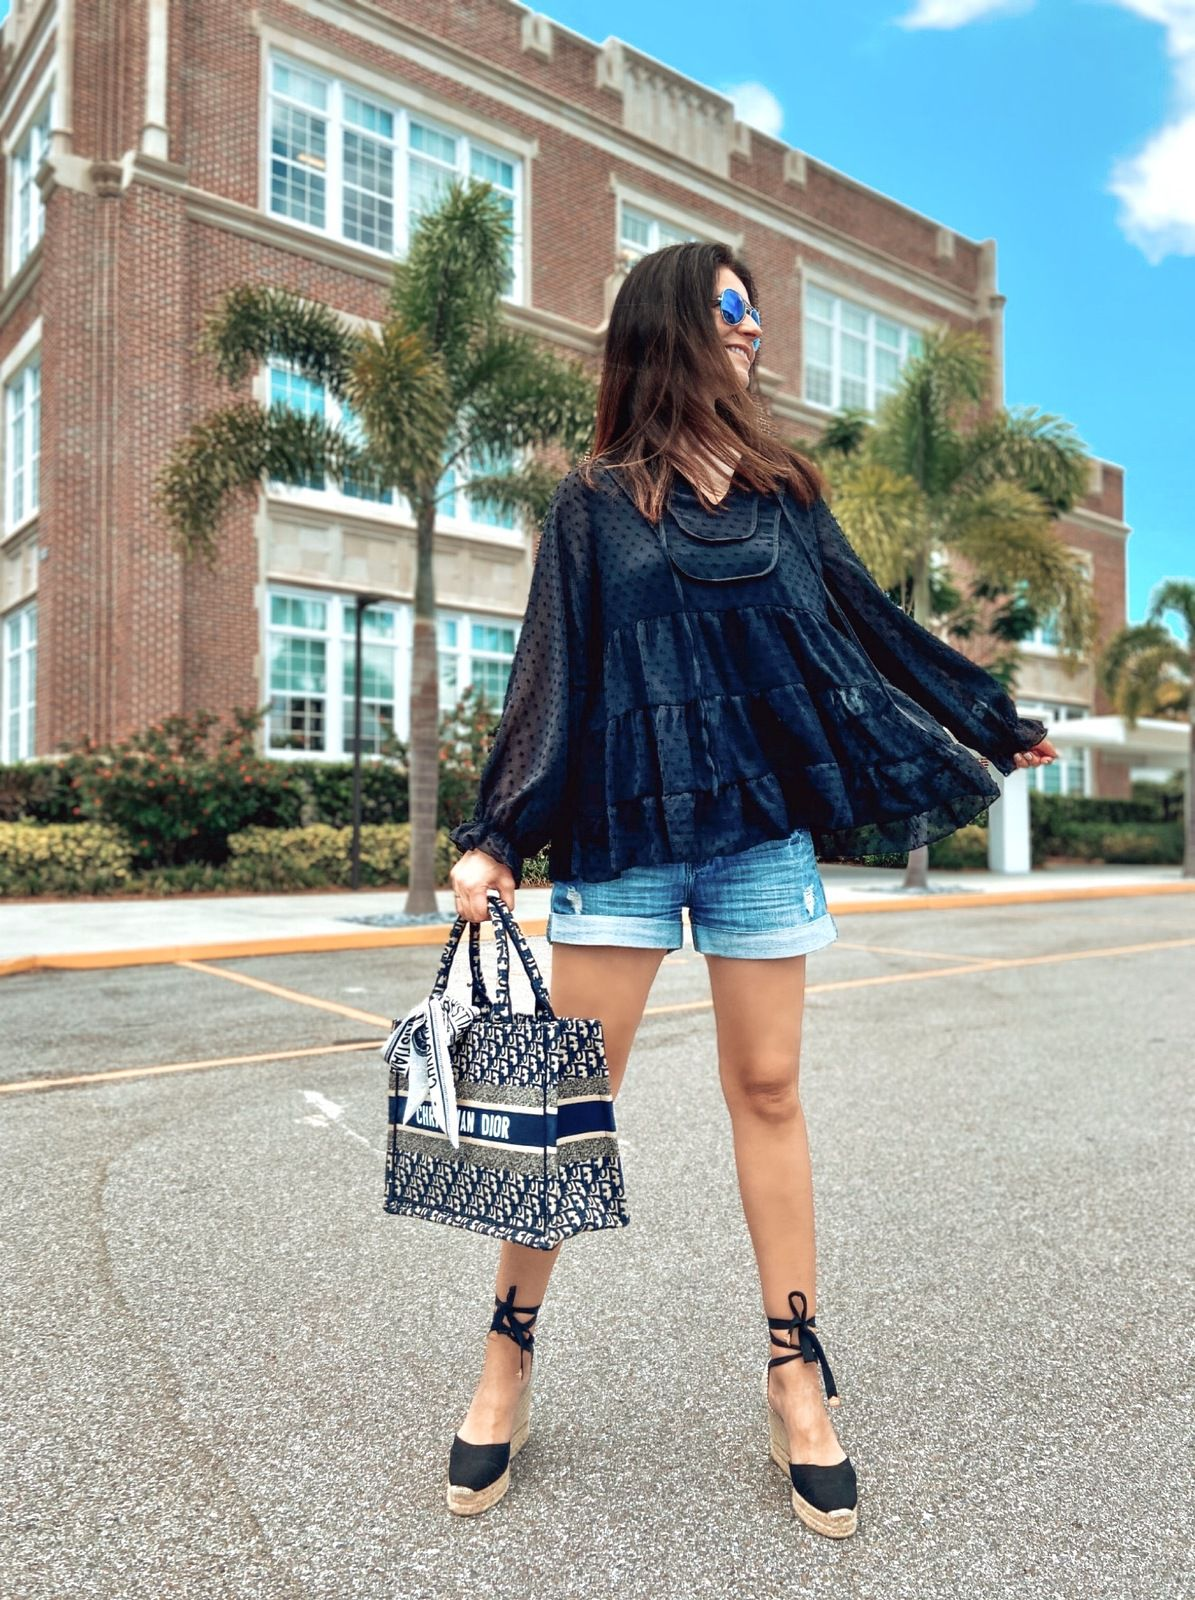 Summer Uniform in shorts and Boho Blouse